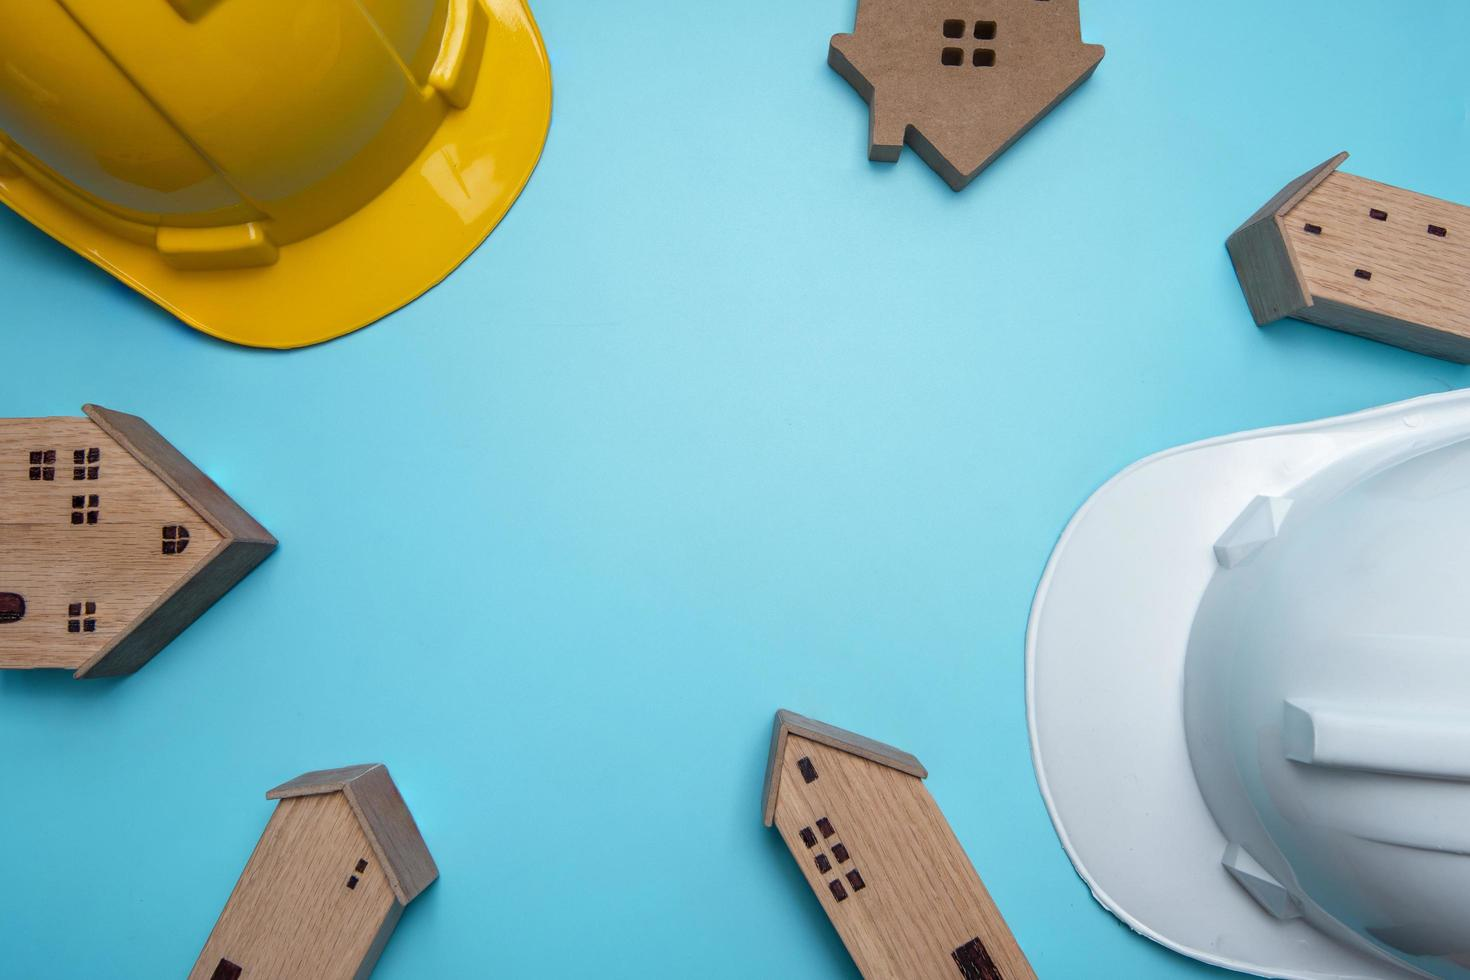 Hardhats with wooden houses on blue background photo